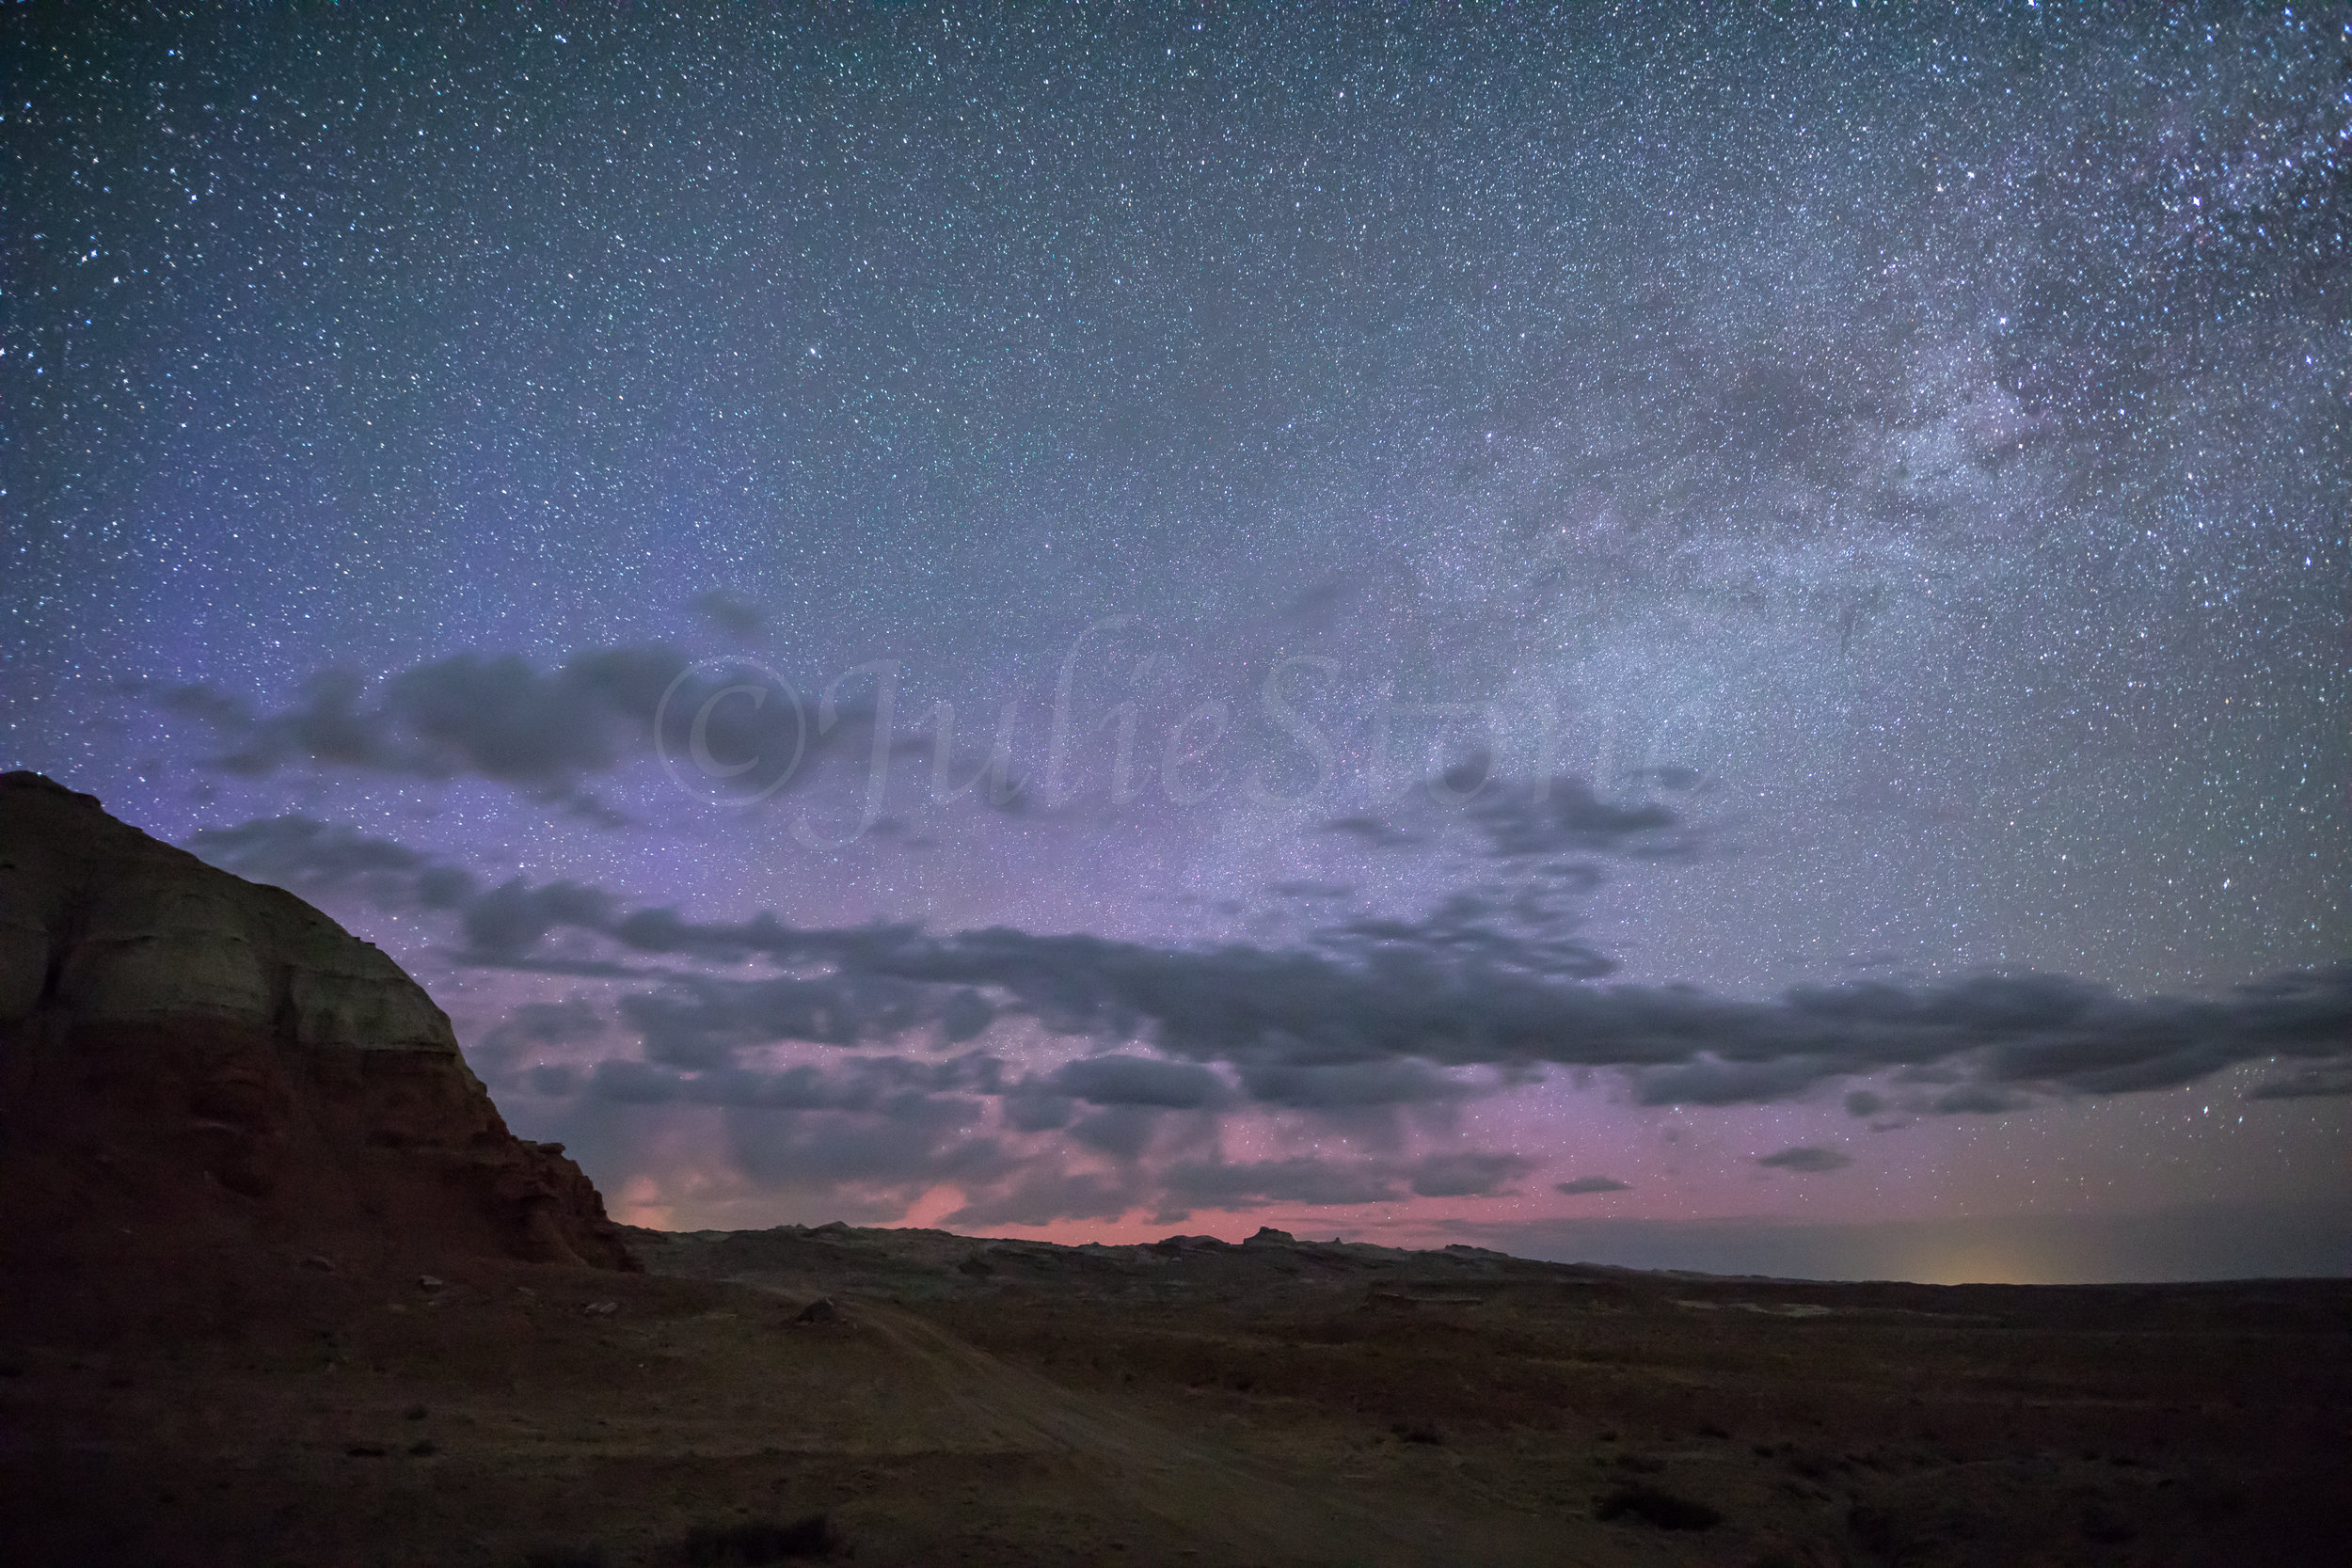 Capitol Reef National Park, Image # 5040